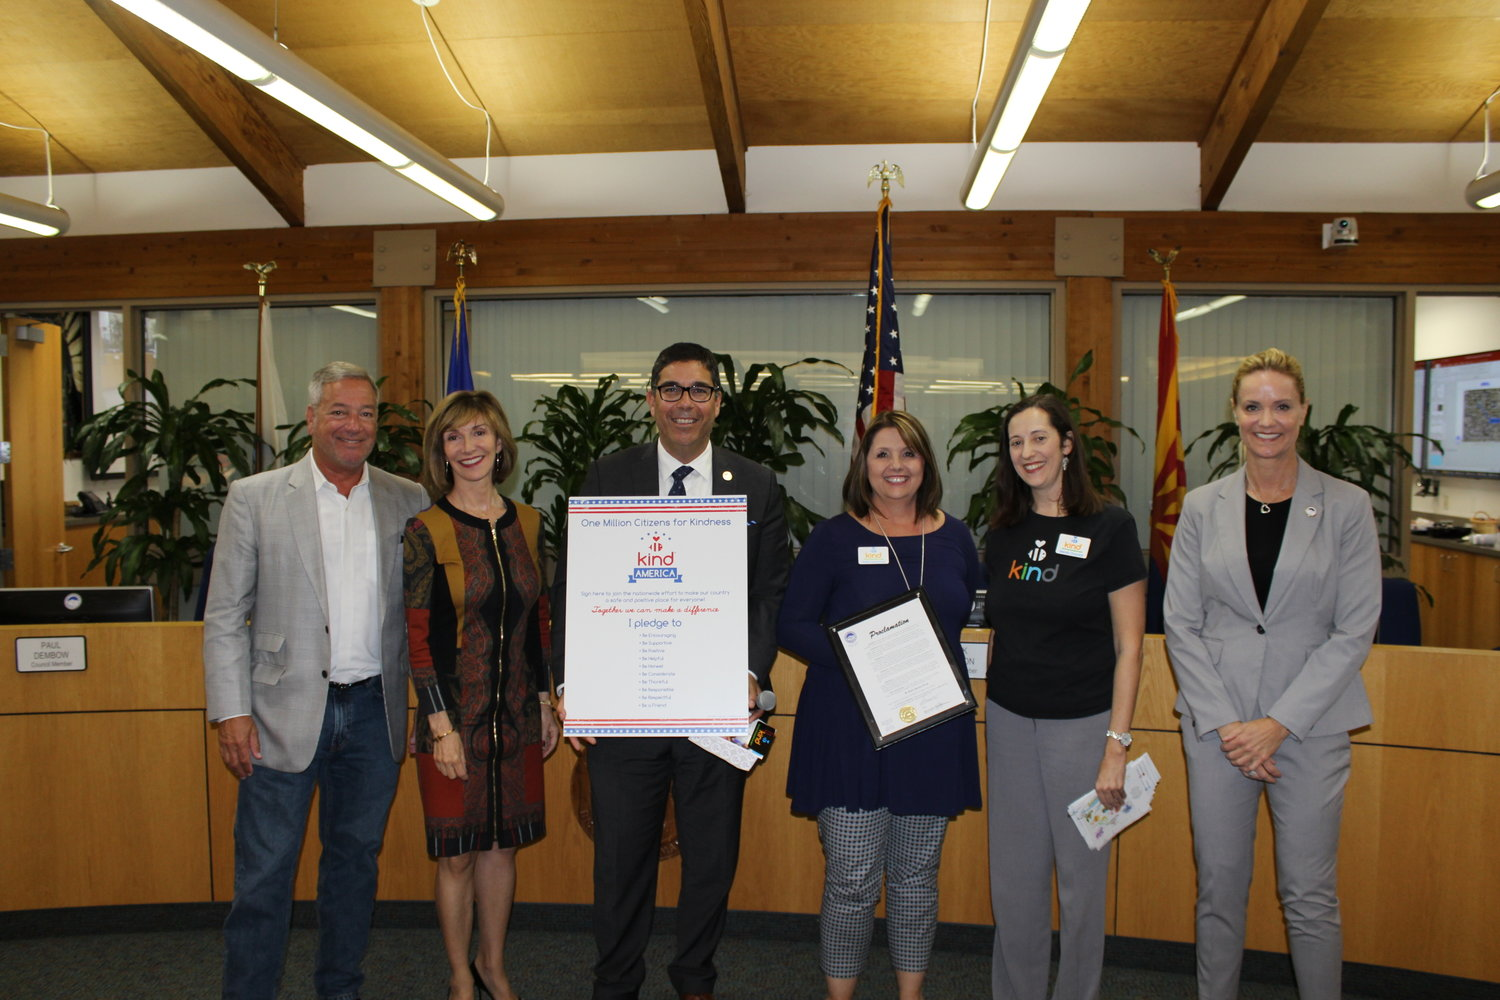 Paradise Valley and Be Kind People Project officials marked the official proclamation on Nov. 7. Pictured from left is Councilmembers Paul Dembow, Anna Thomasson, Mayor Jerry Bien-Willner, Wendy Heller Chovnick and Robin Lee-Amos, and Councilmember Ellen Andeen.